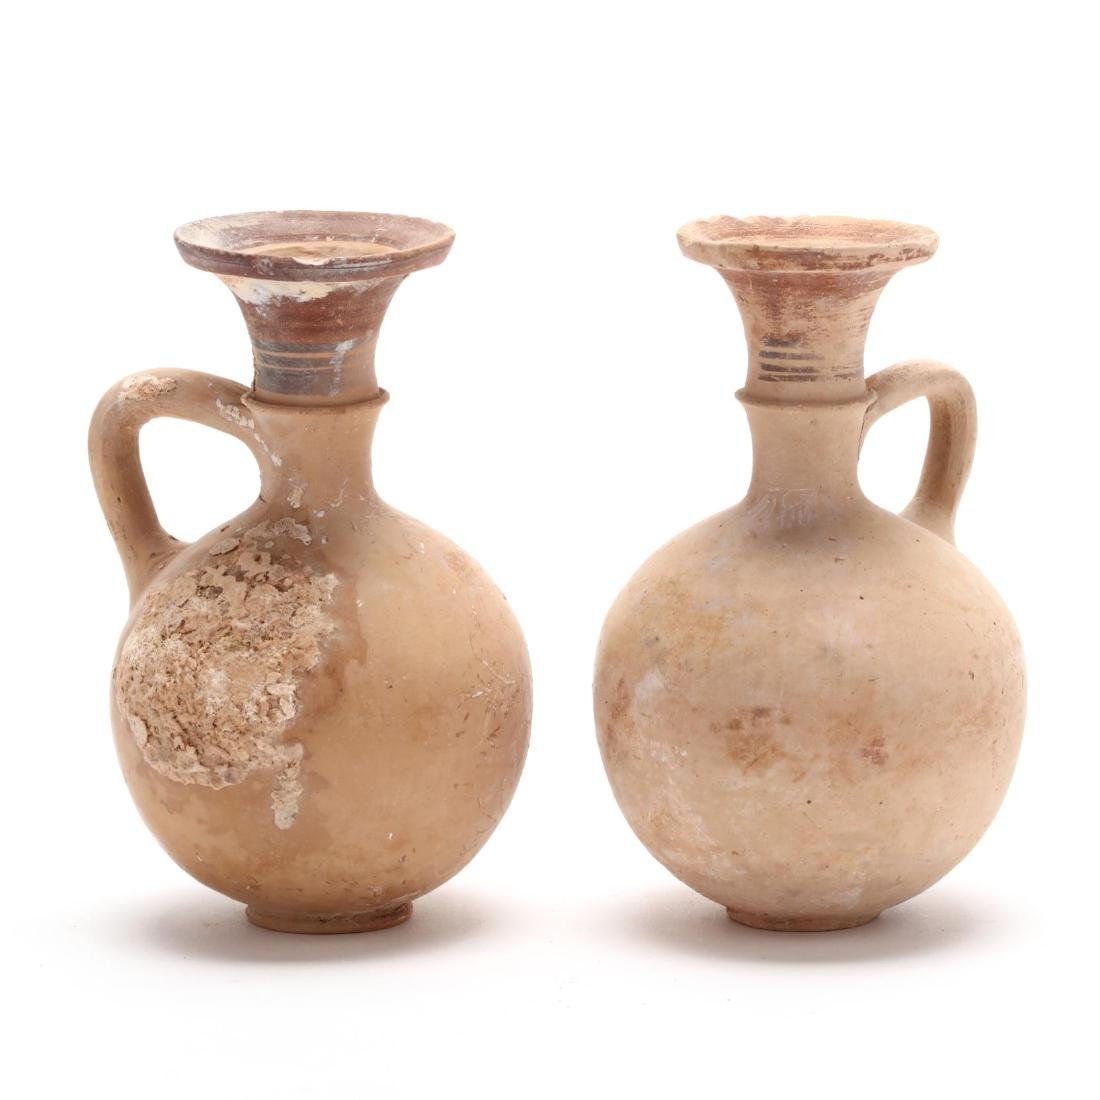 Pair of Cypro-Geometric Creme Ware Pottery Flasks